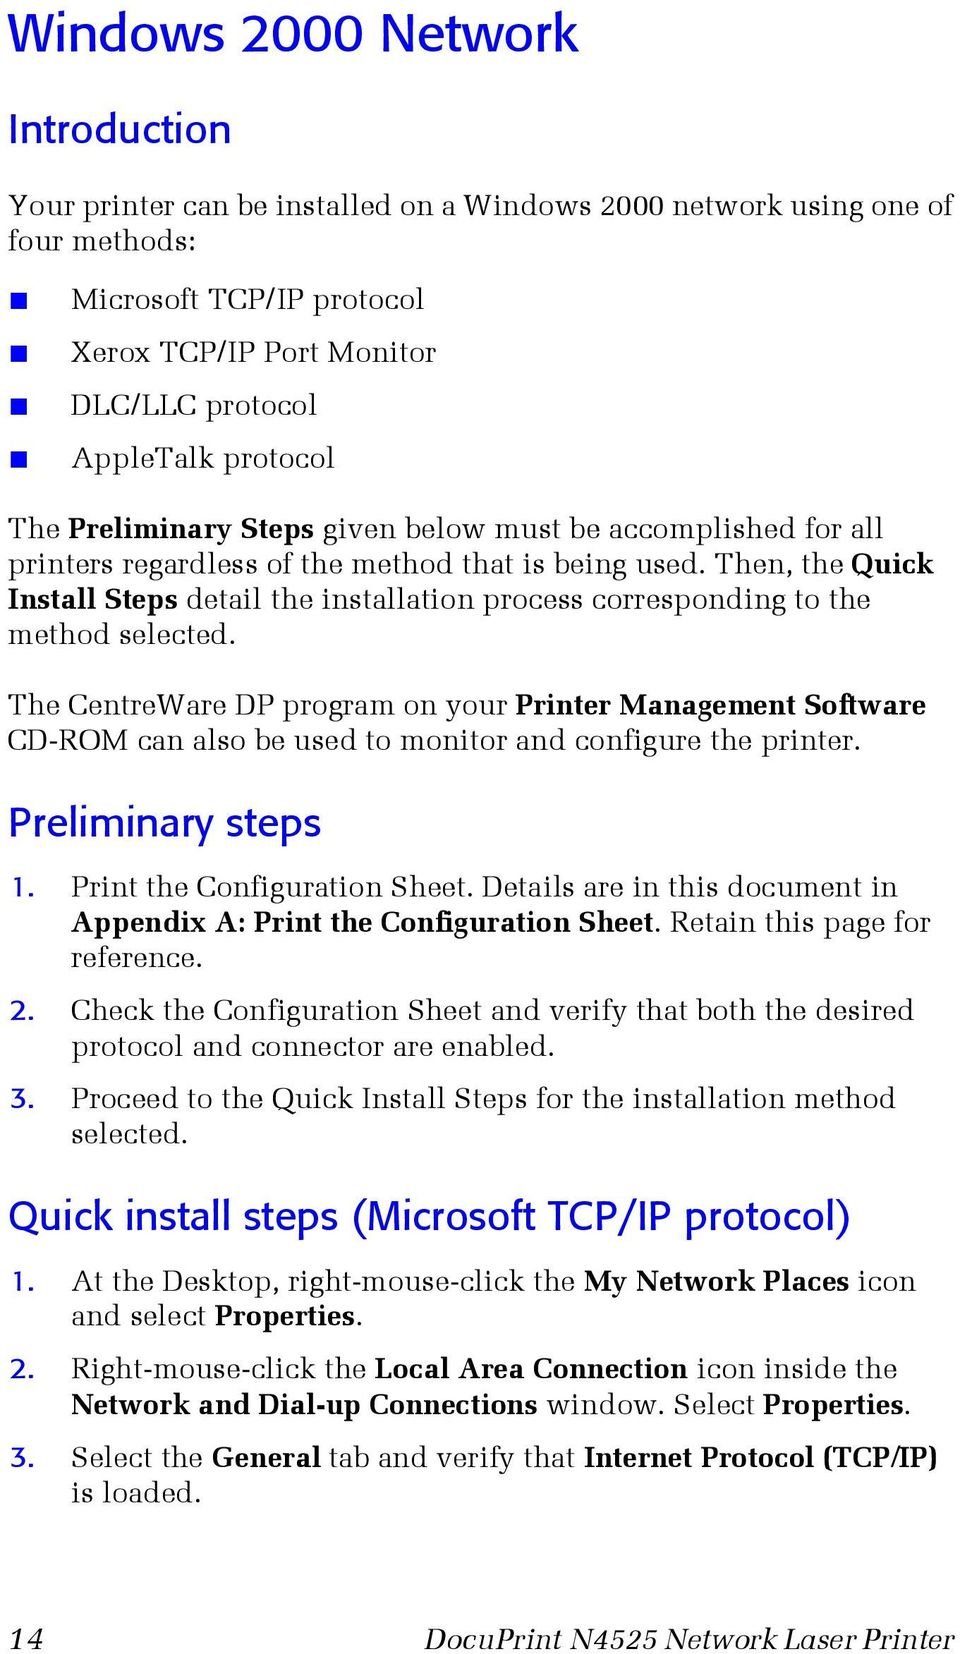 Then, the Quick Install Steps detail the installation process corresponding to the method selected.